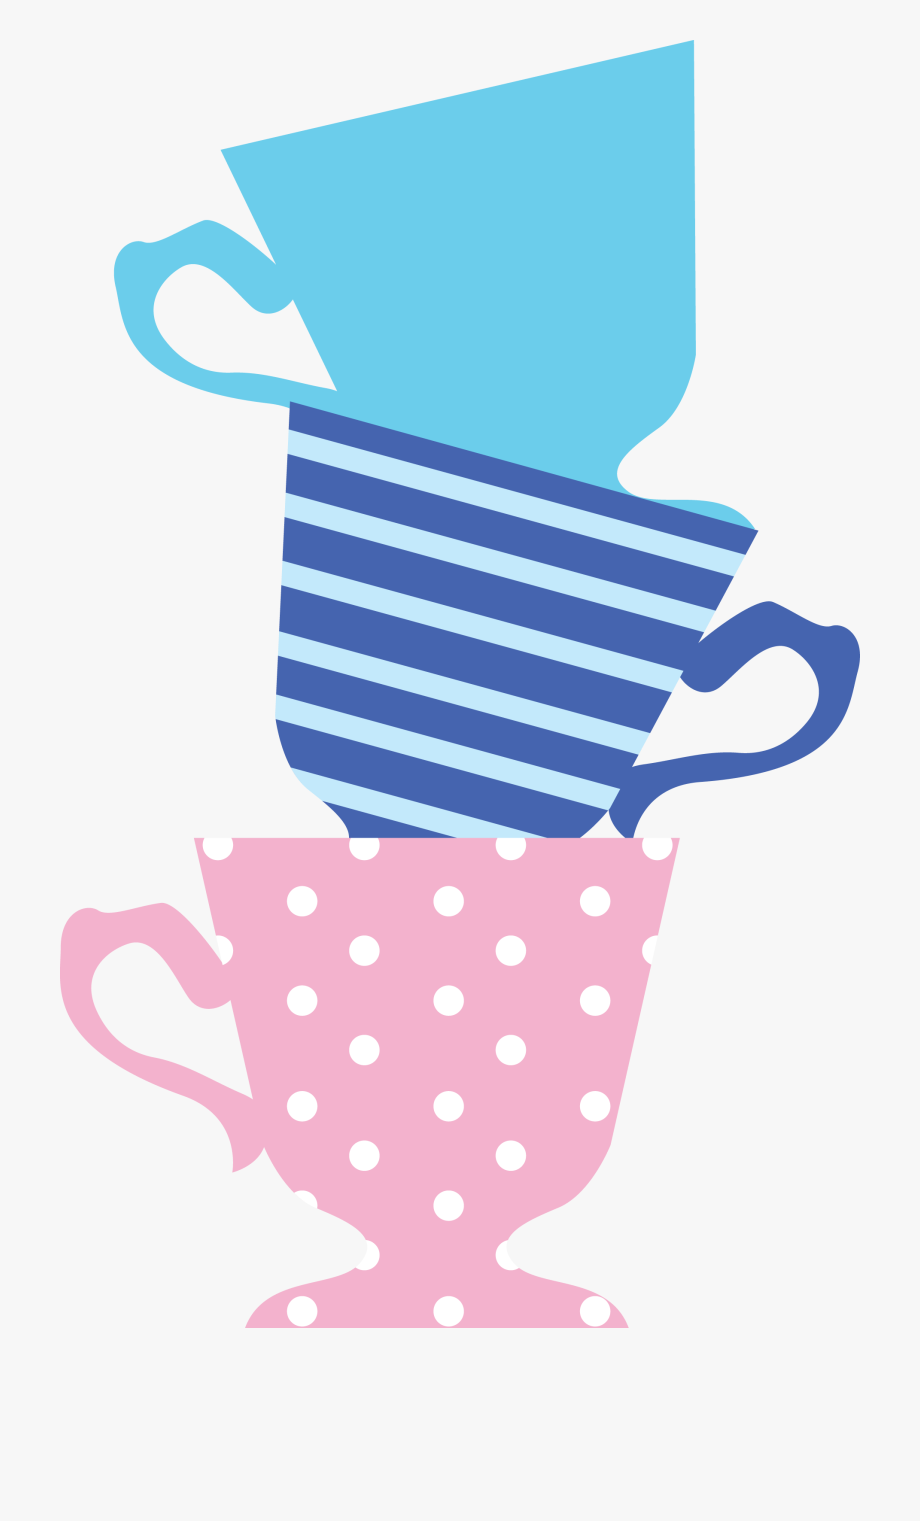 clip art freeuse stock Wonderland clipart stacked teacup. Graphic royalty free download.